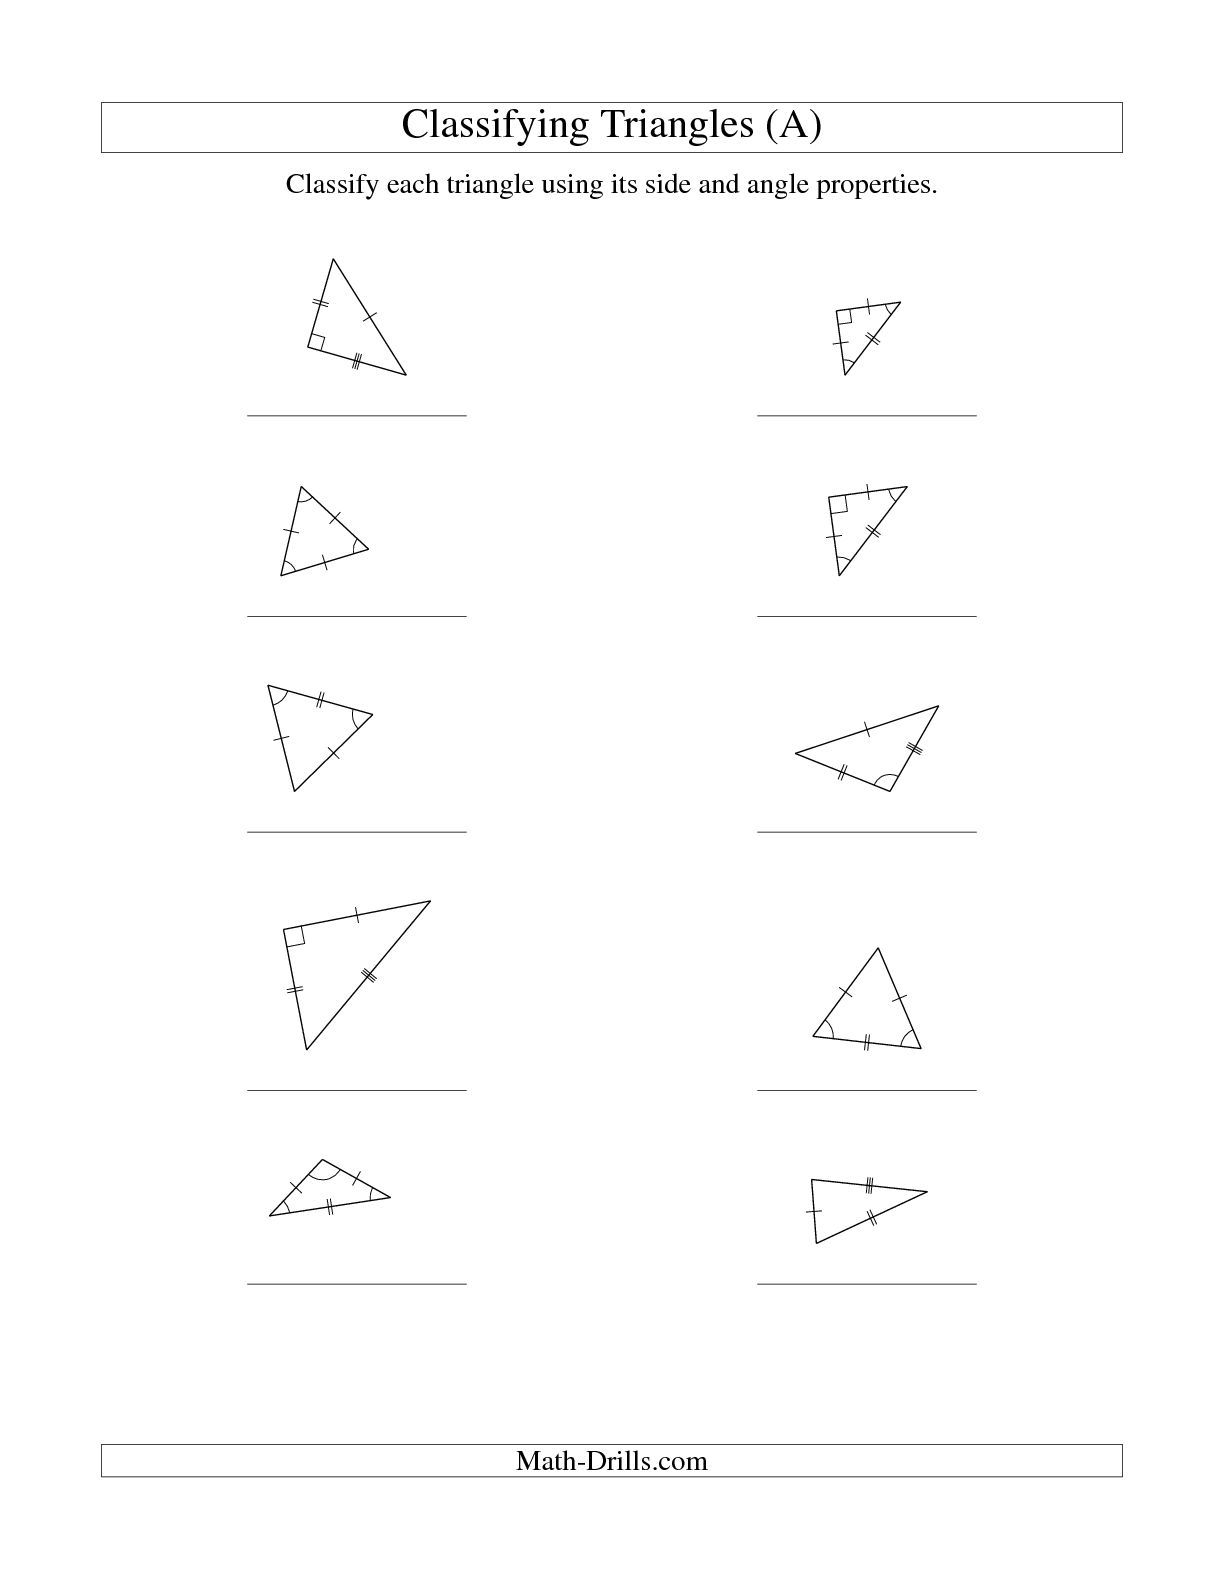 The Classifying Triangles By Angle And Side Properties A